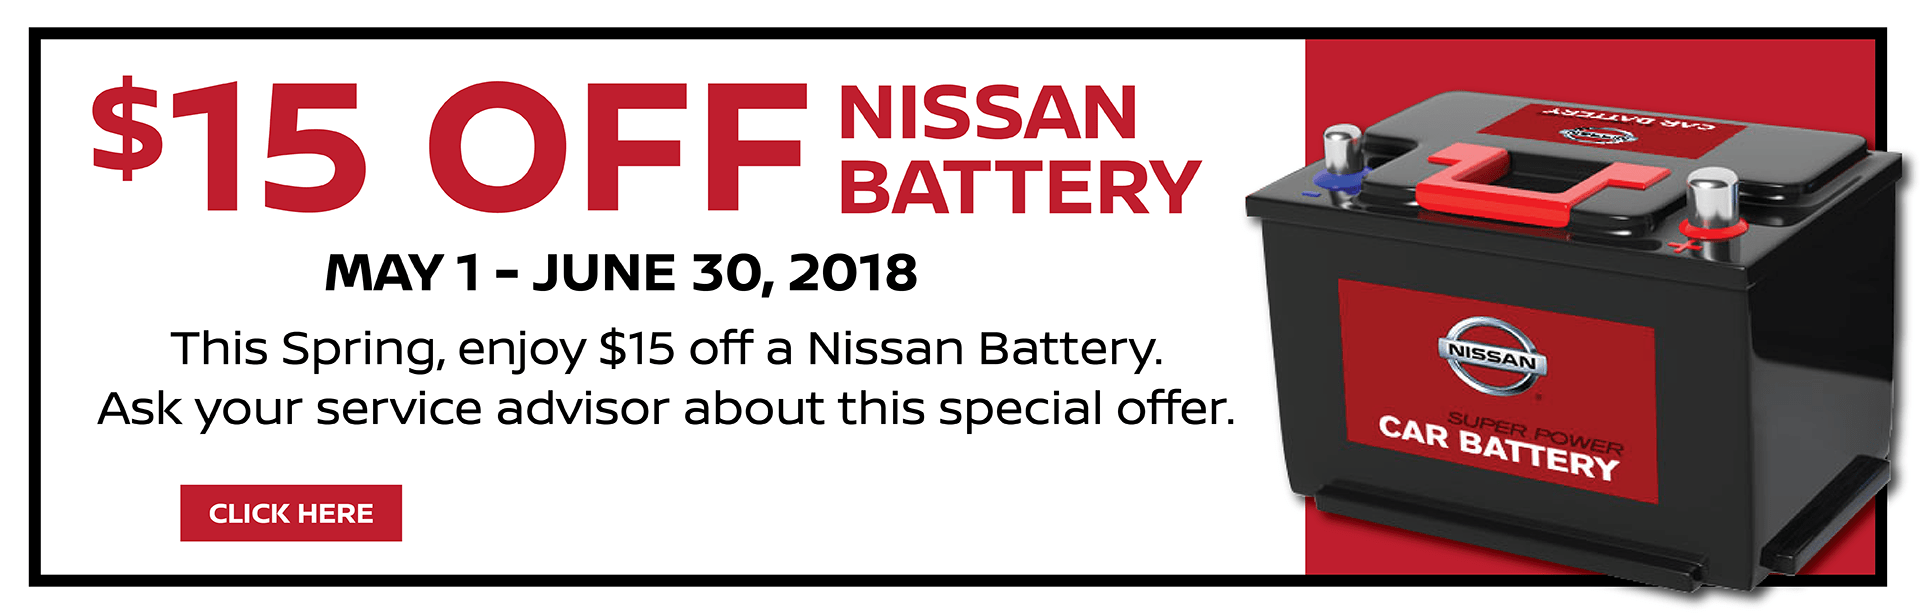 Nissan Battery Slider